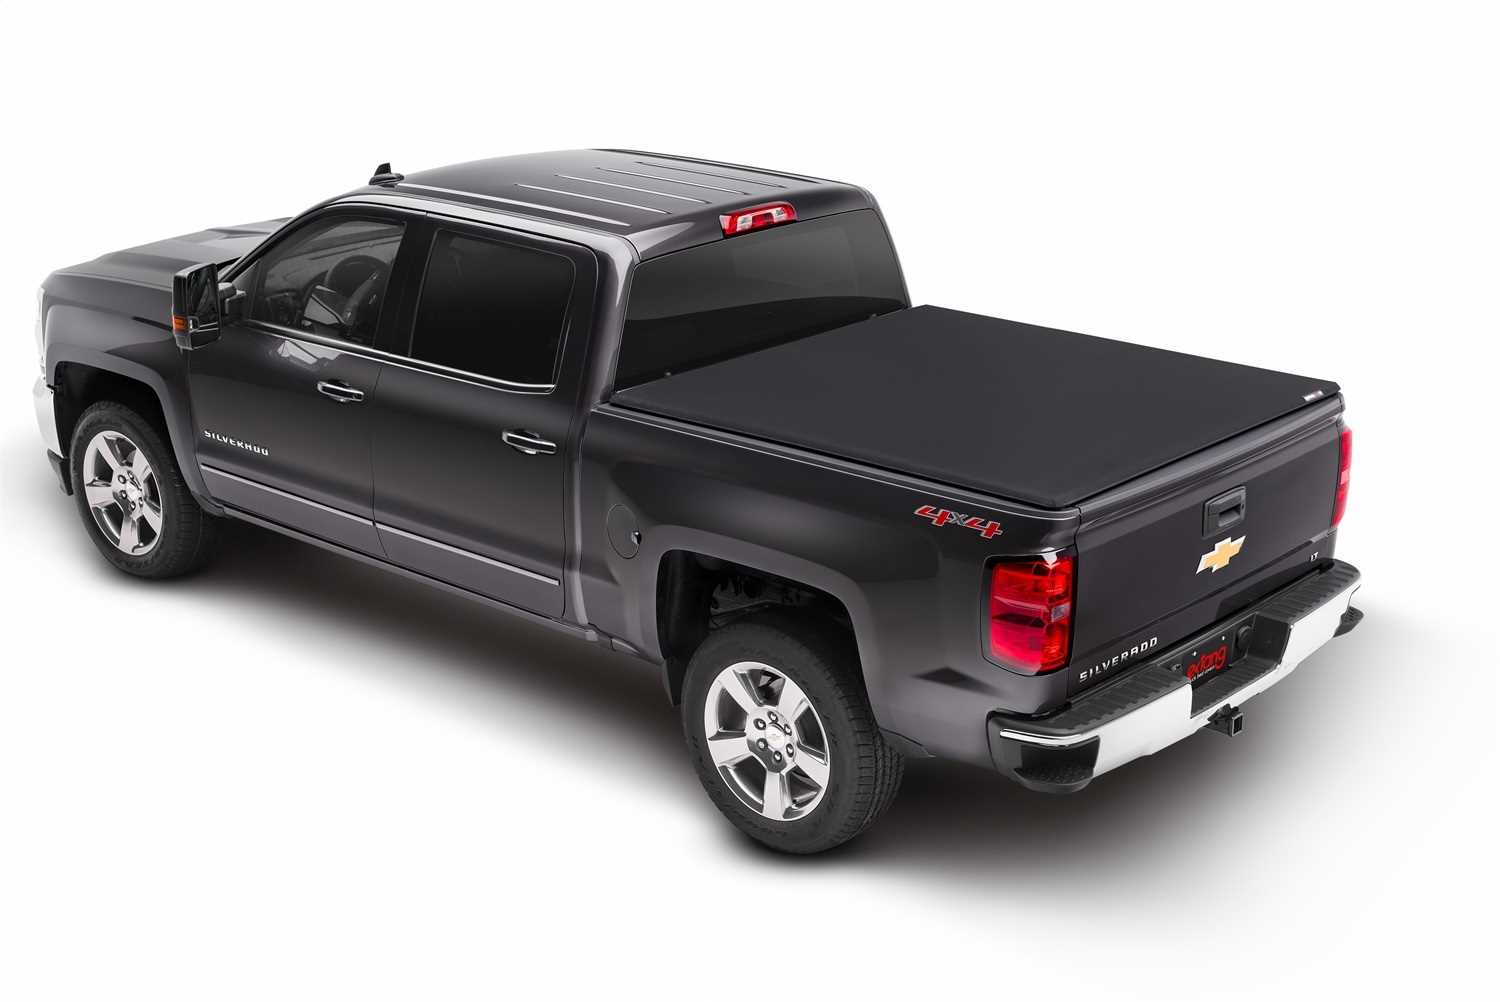 94665 Extang Trifecta Signature 2.0 Tonneau Cover